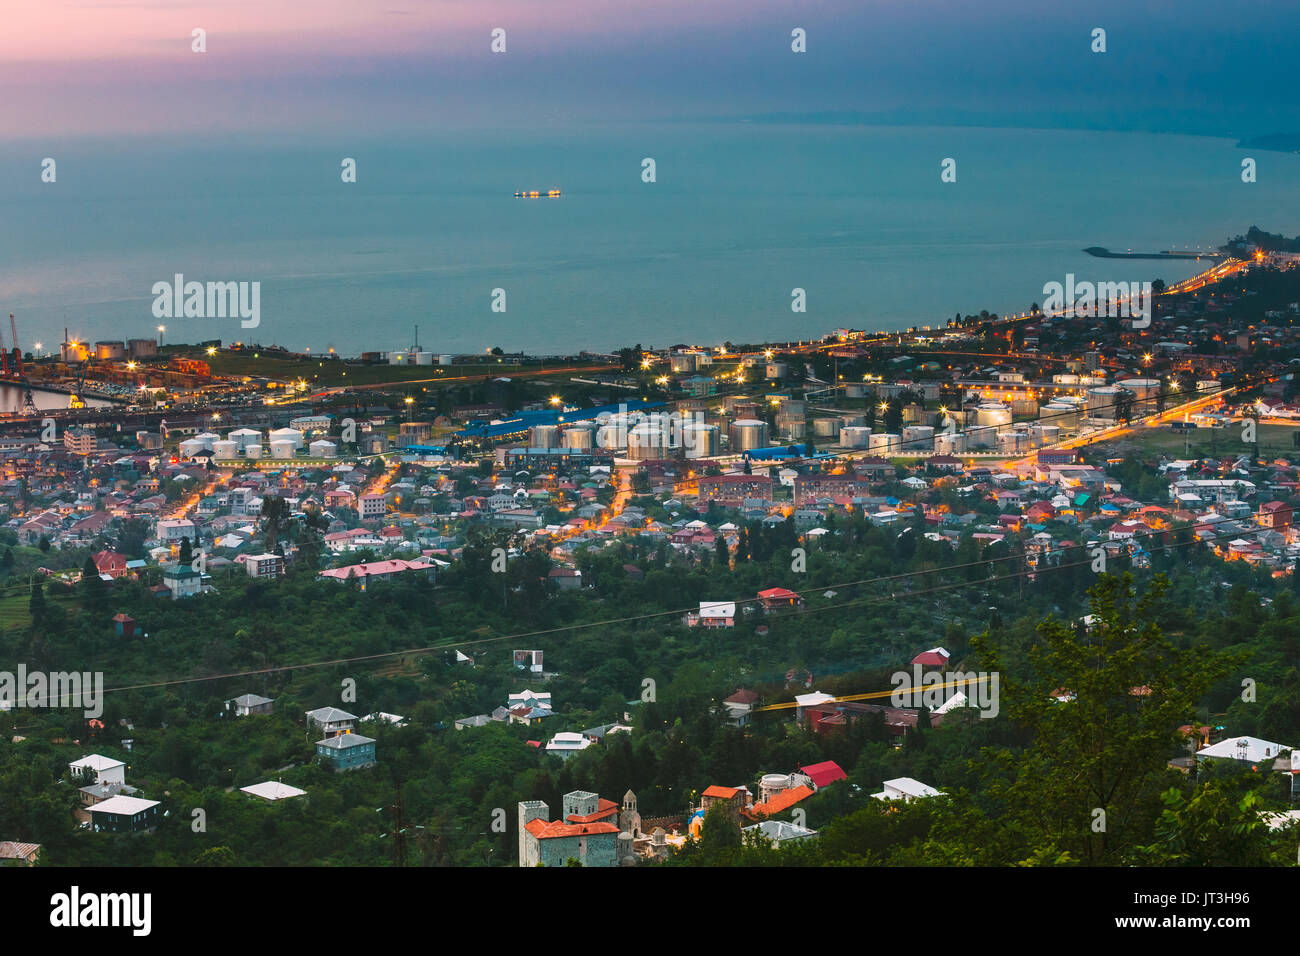 Batumi, Adjara, Georgia. Aerial View Of Urban Cityscape At Evening. Black Sea And Port In Night Illumination. - Stock Image